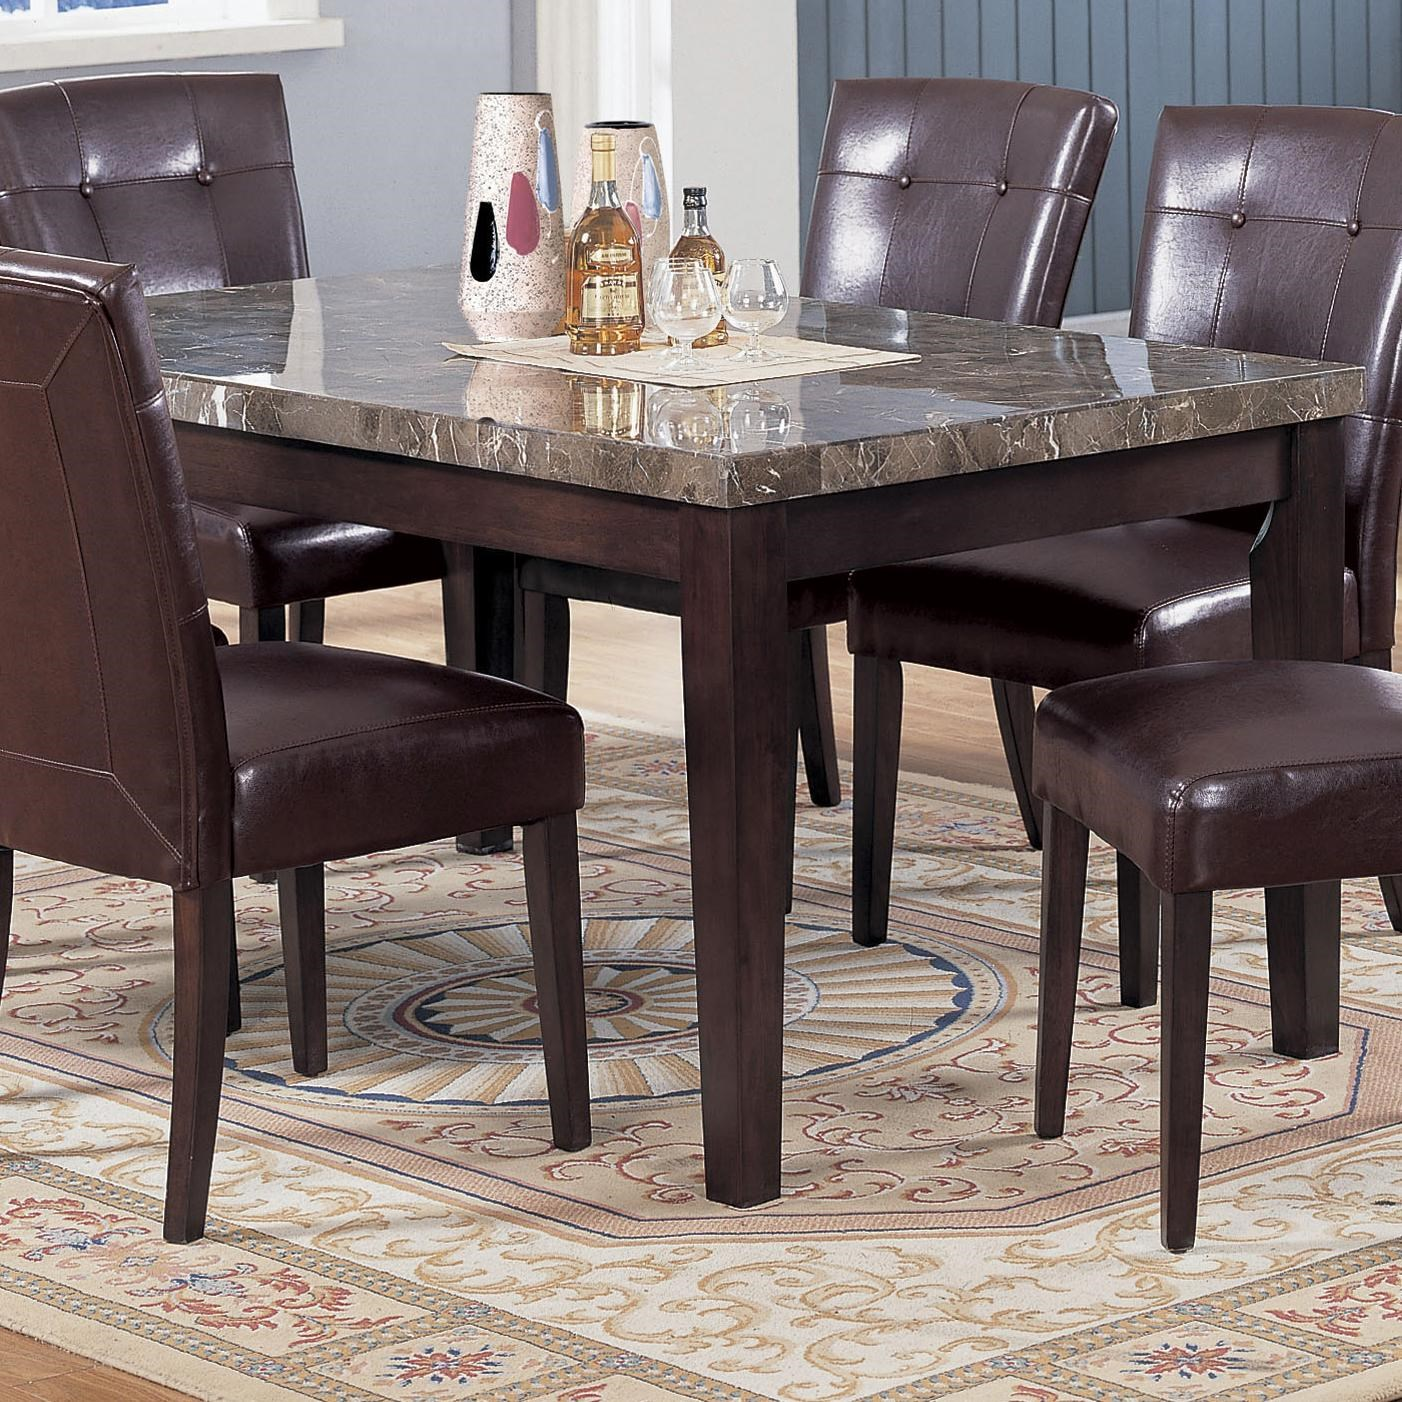 acme furniture 7058 07058 rectangular dining table with black marble rh nassaufurnitureonline com acme furniture cardiff dining table acme furniture kaelyn dining table